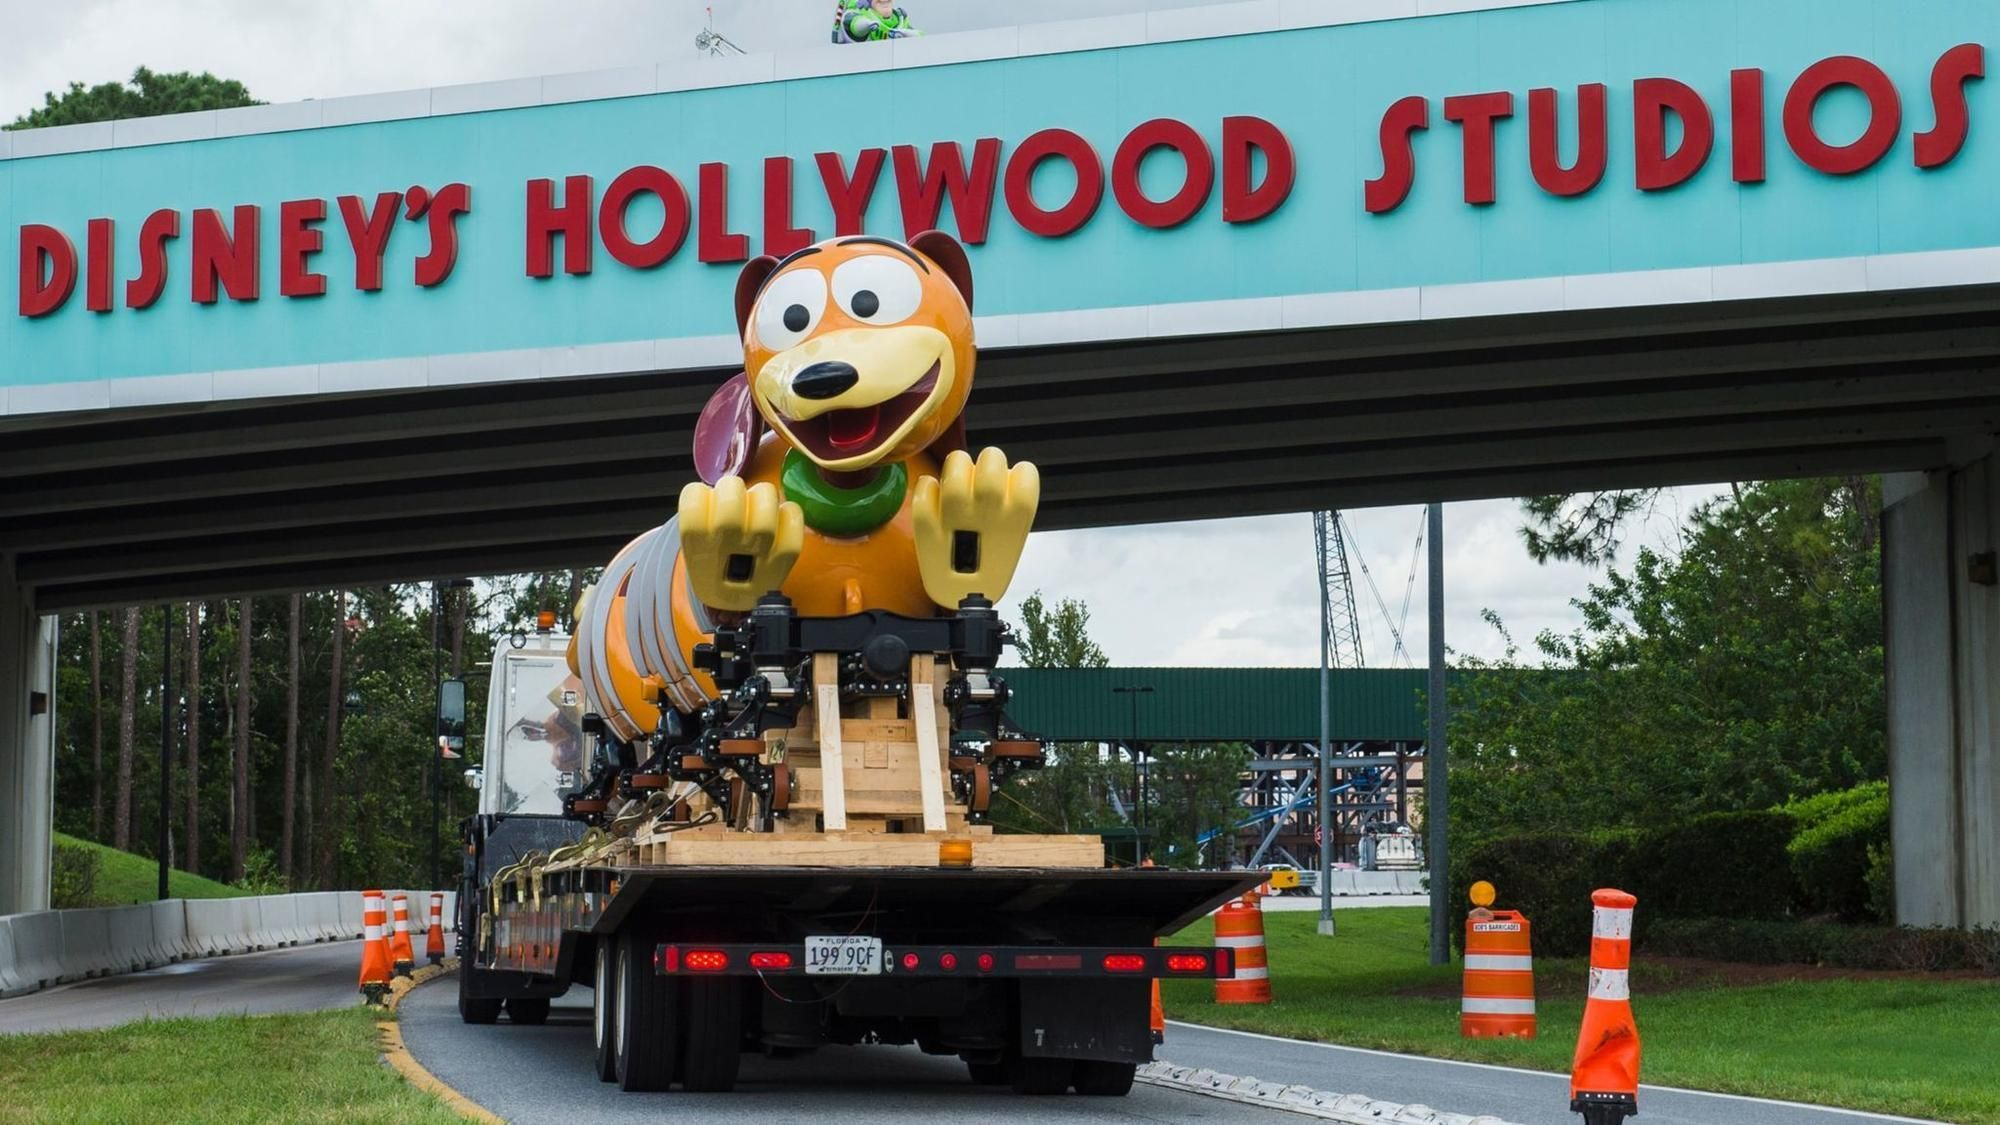 Disney park is hollywood studios for foreseeable future